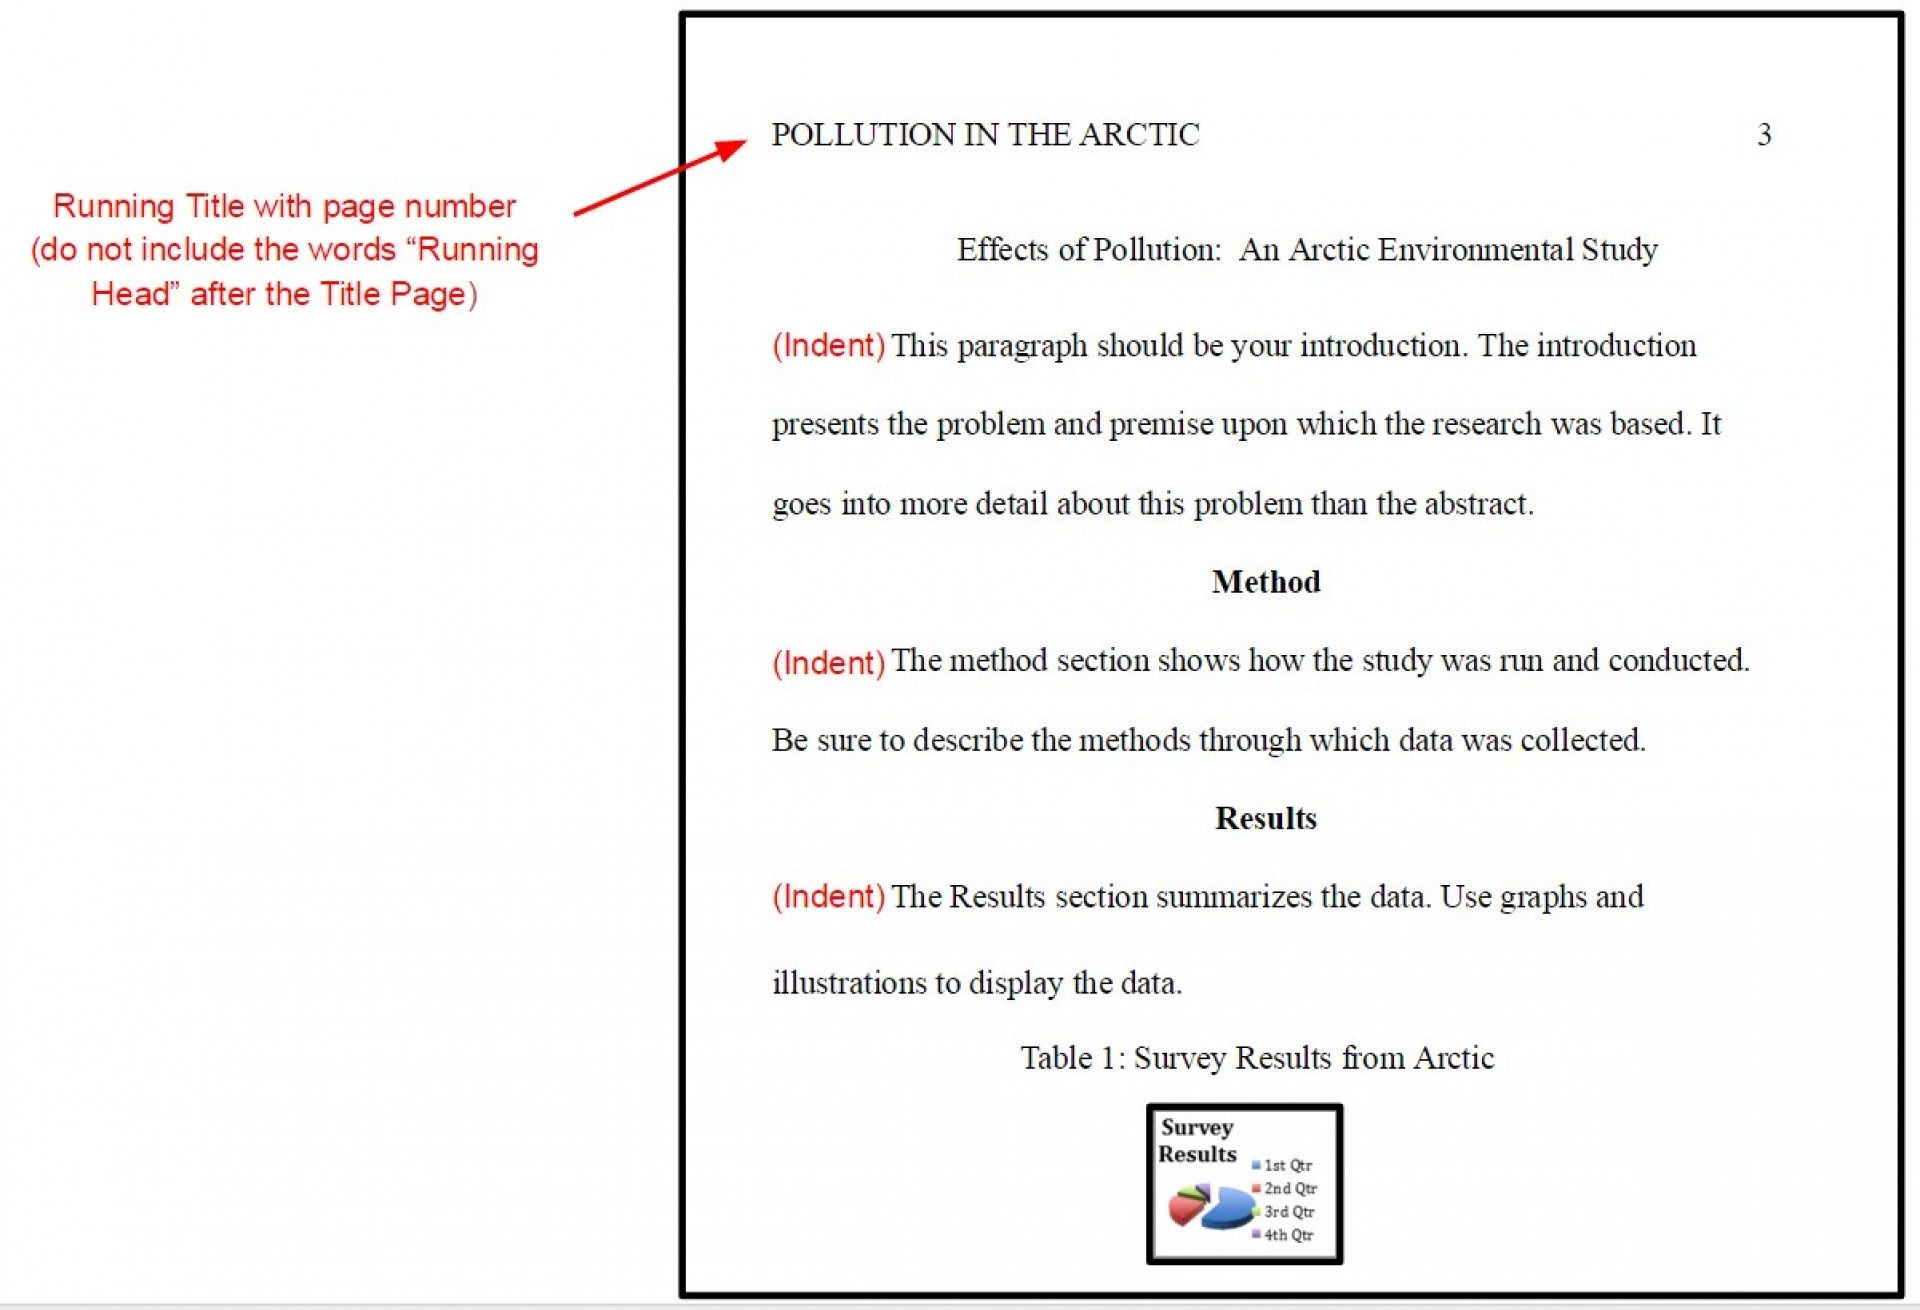 001 Header For Research Paper Rare Apa And Footer 1920